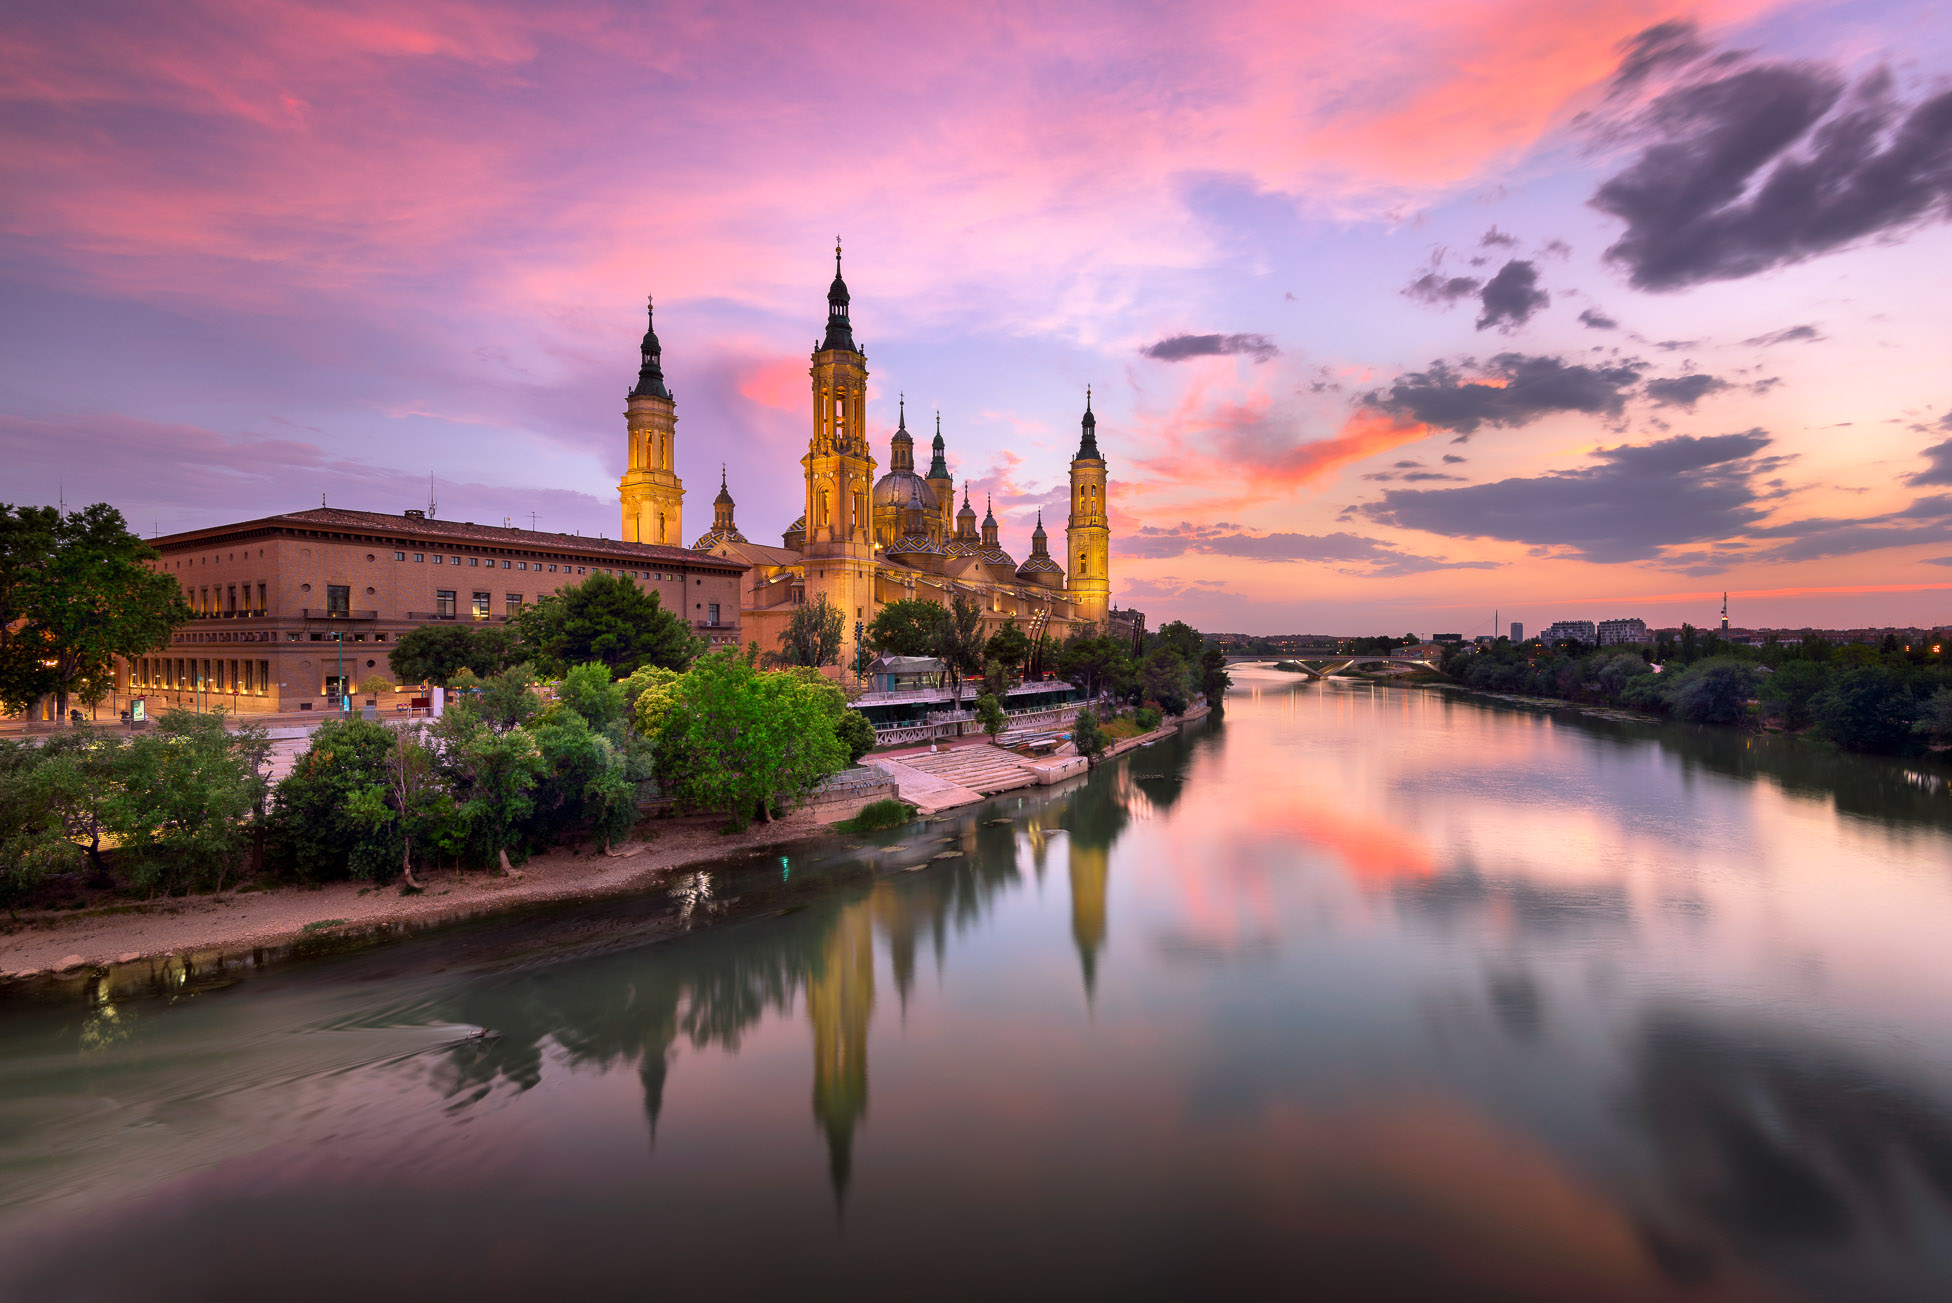 Basilica of Our Lady of the Pillar and Ebor River in the Evening, Zaragoza, Aragon, Spain